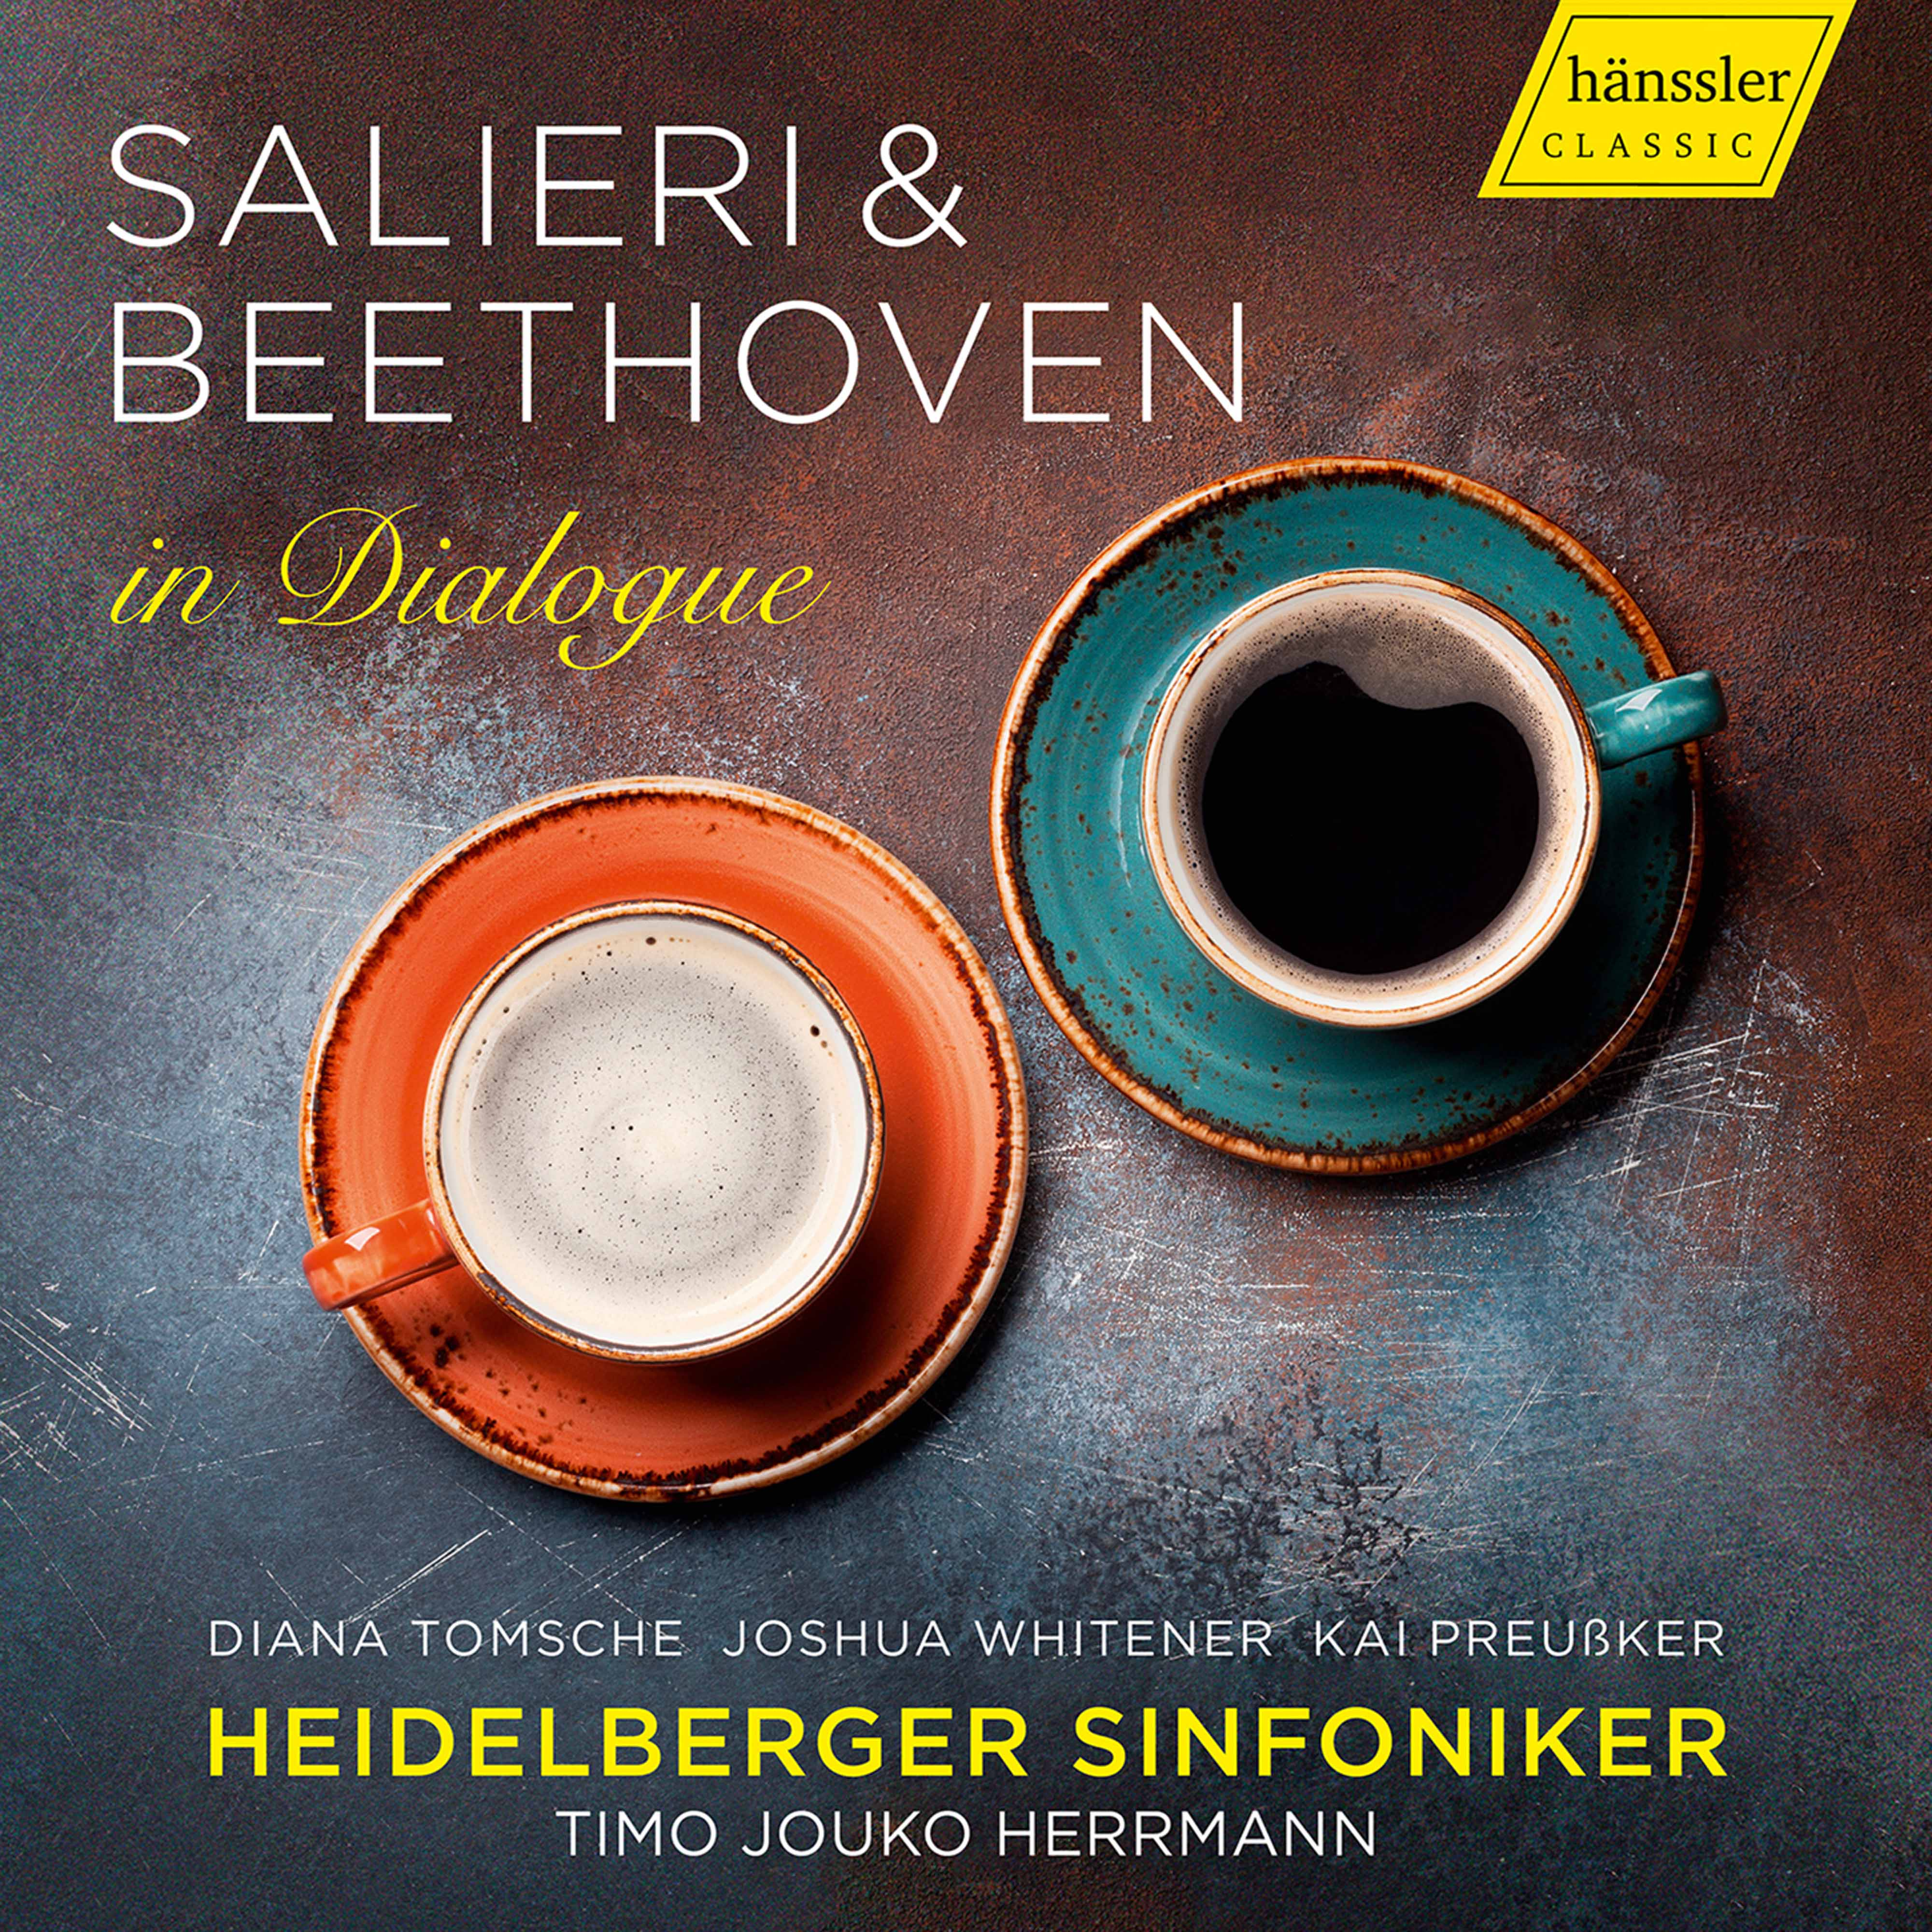 salieri_beethoven_in_dialogue_heidelberger.jpg